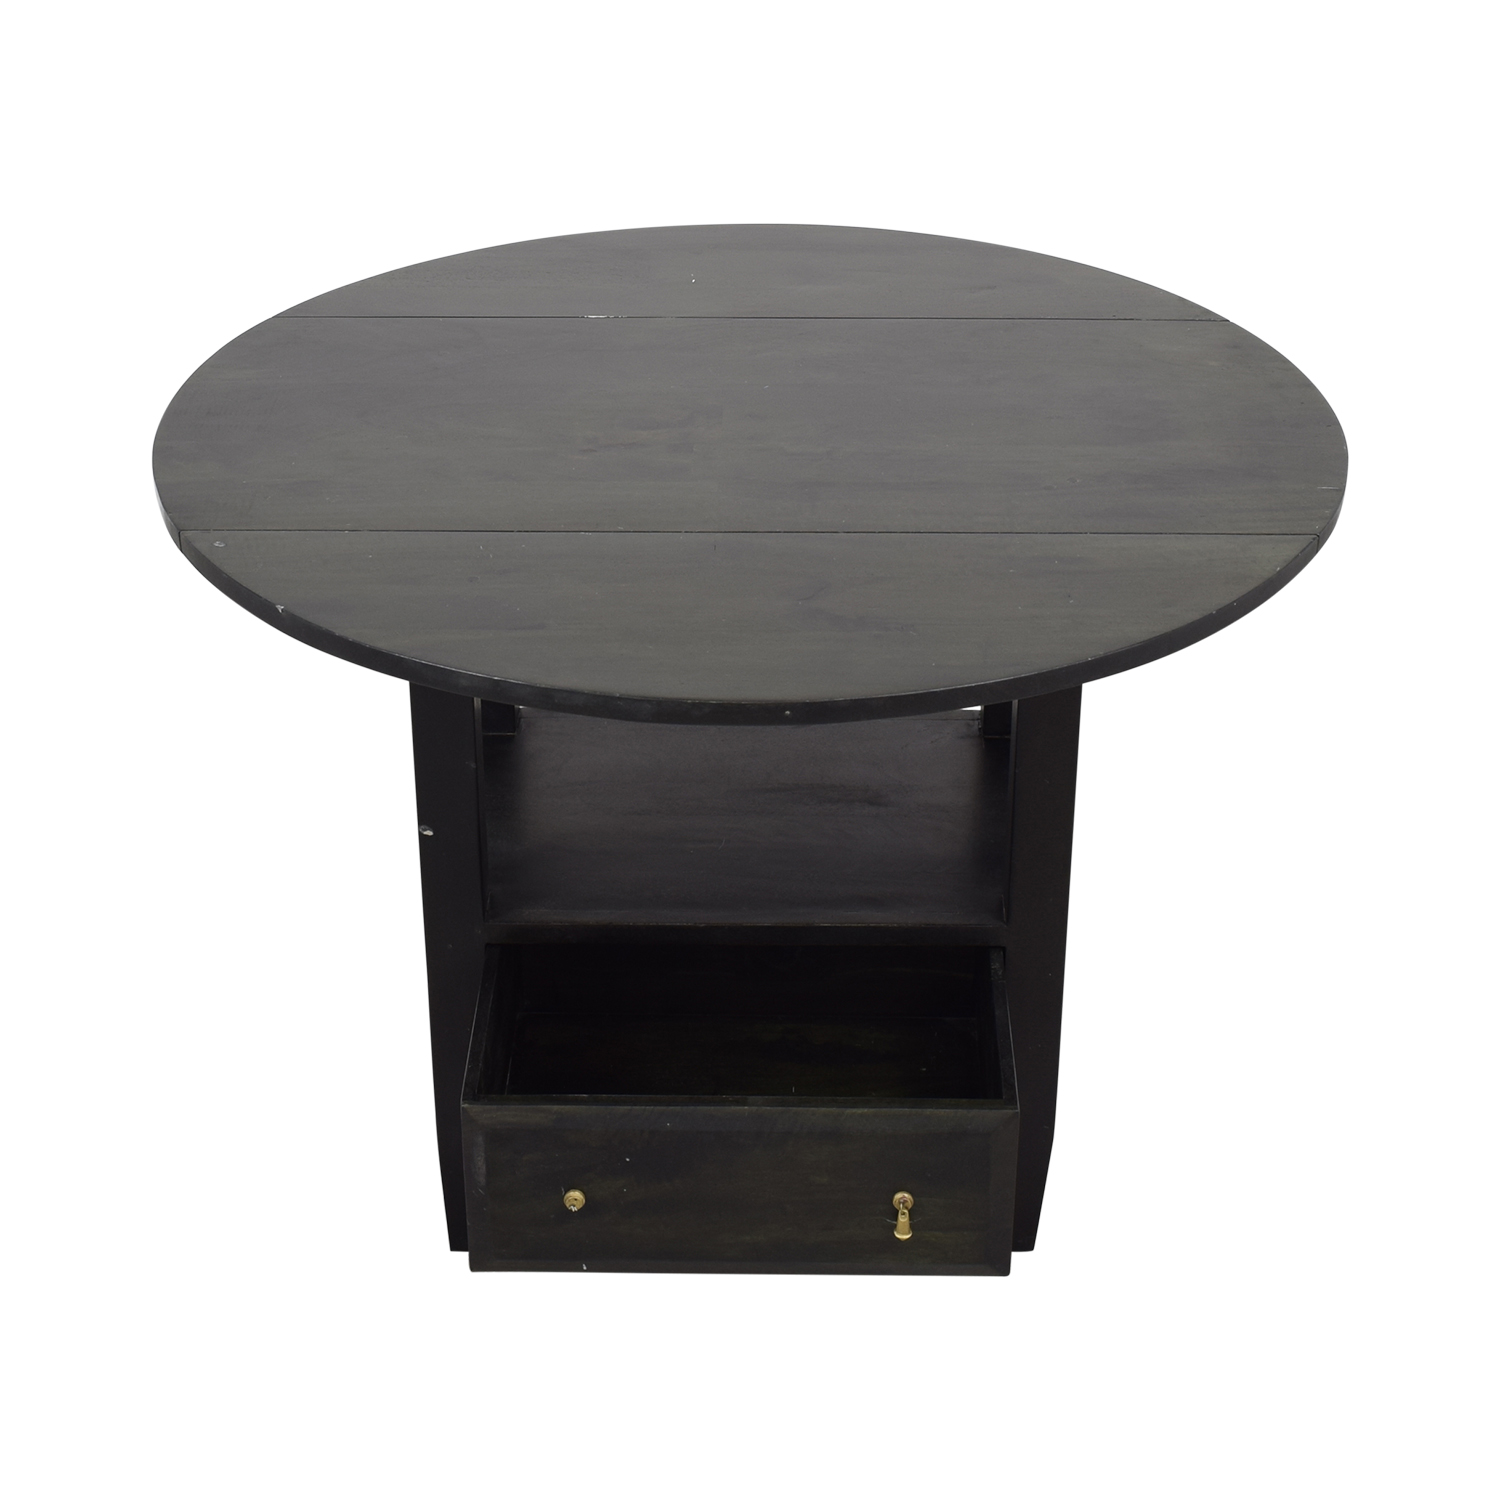 buy Crate & Barrel Crate & Barrel Drop Leaf Counter Table with Storage online